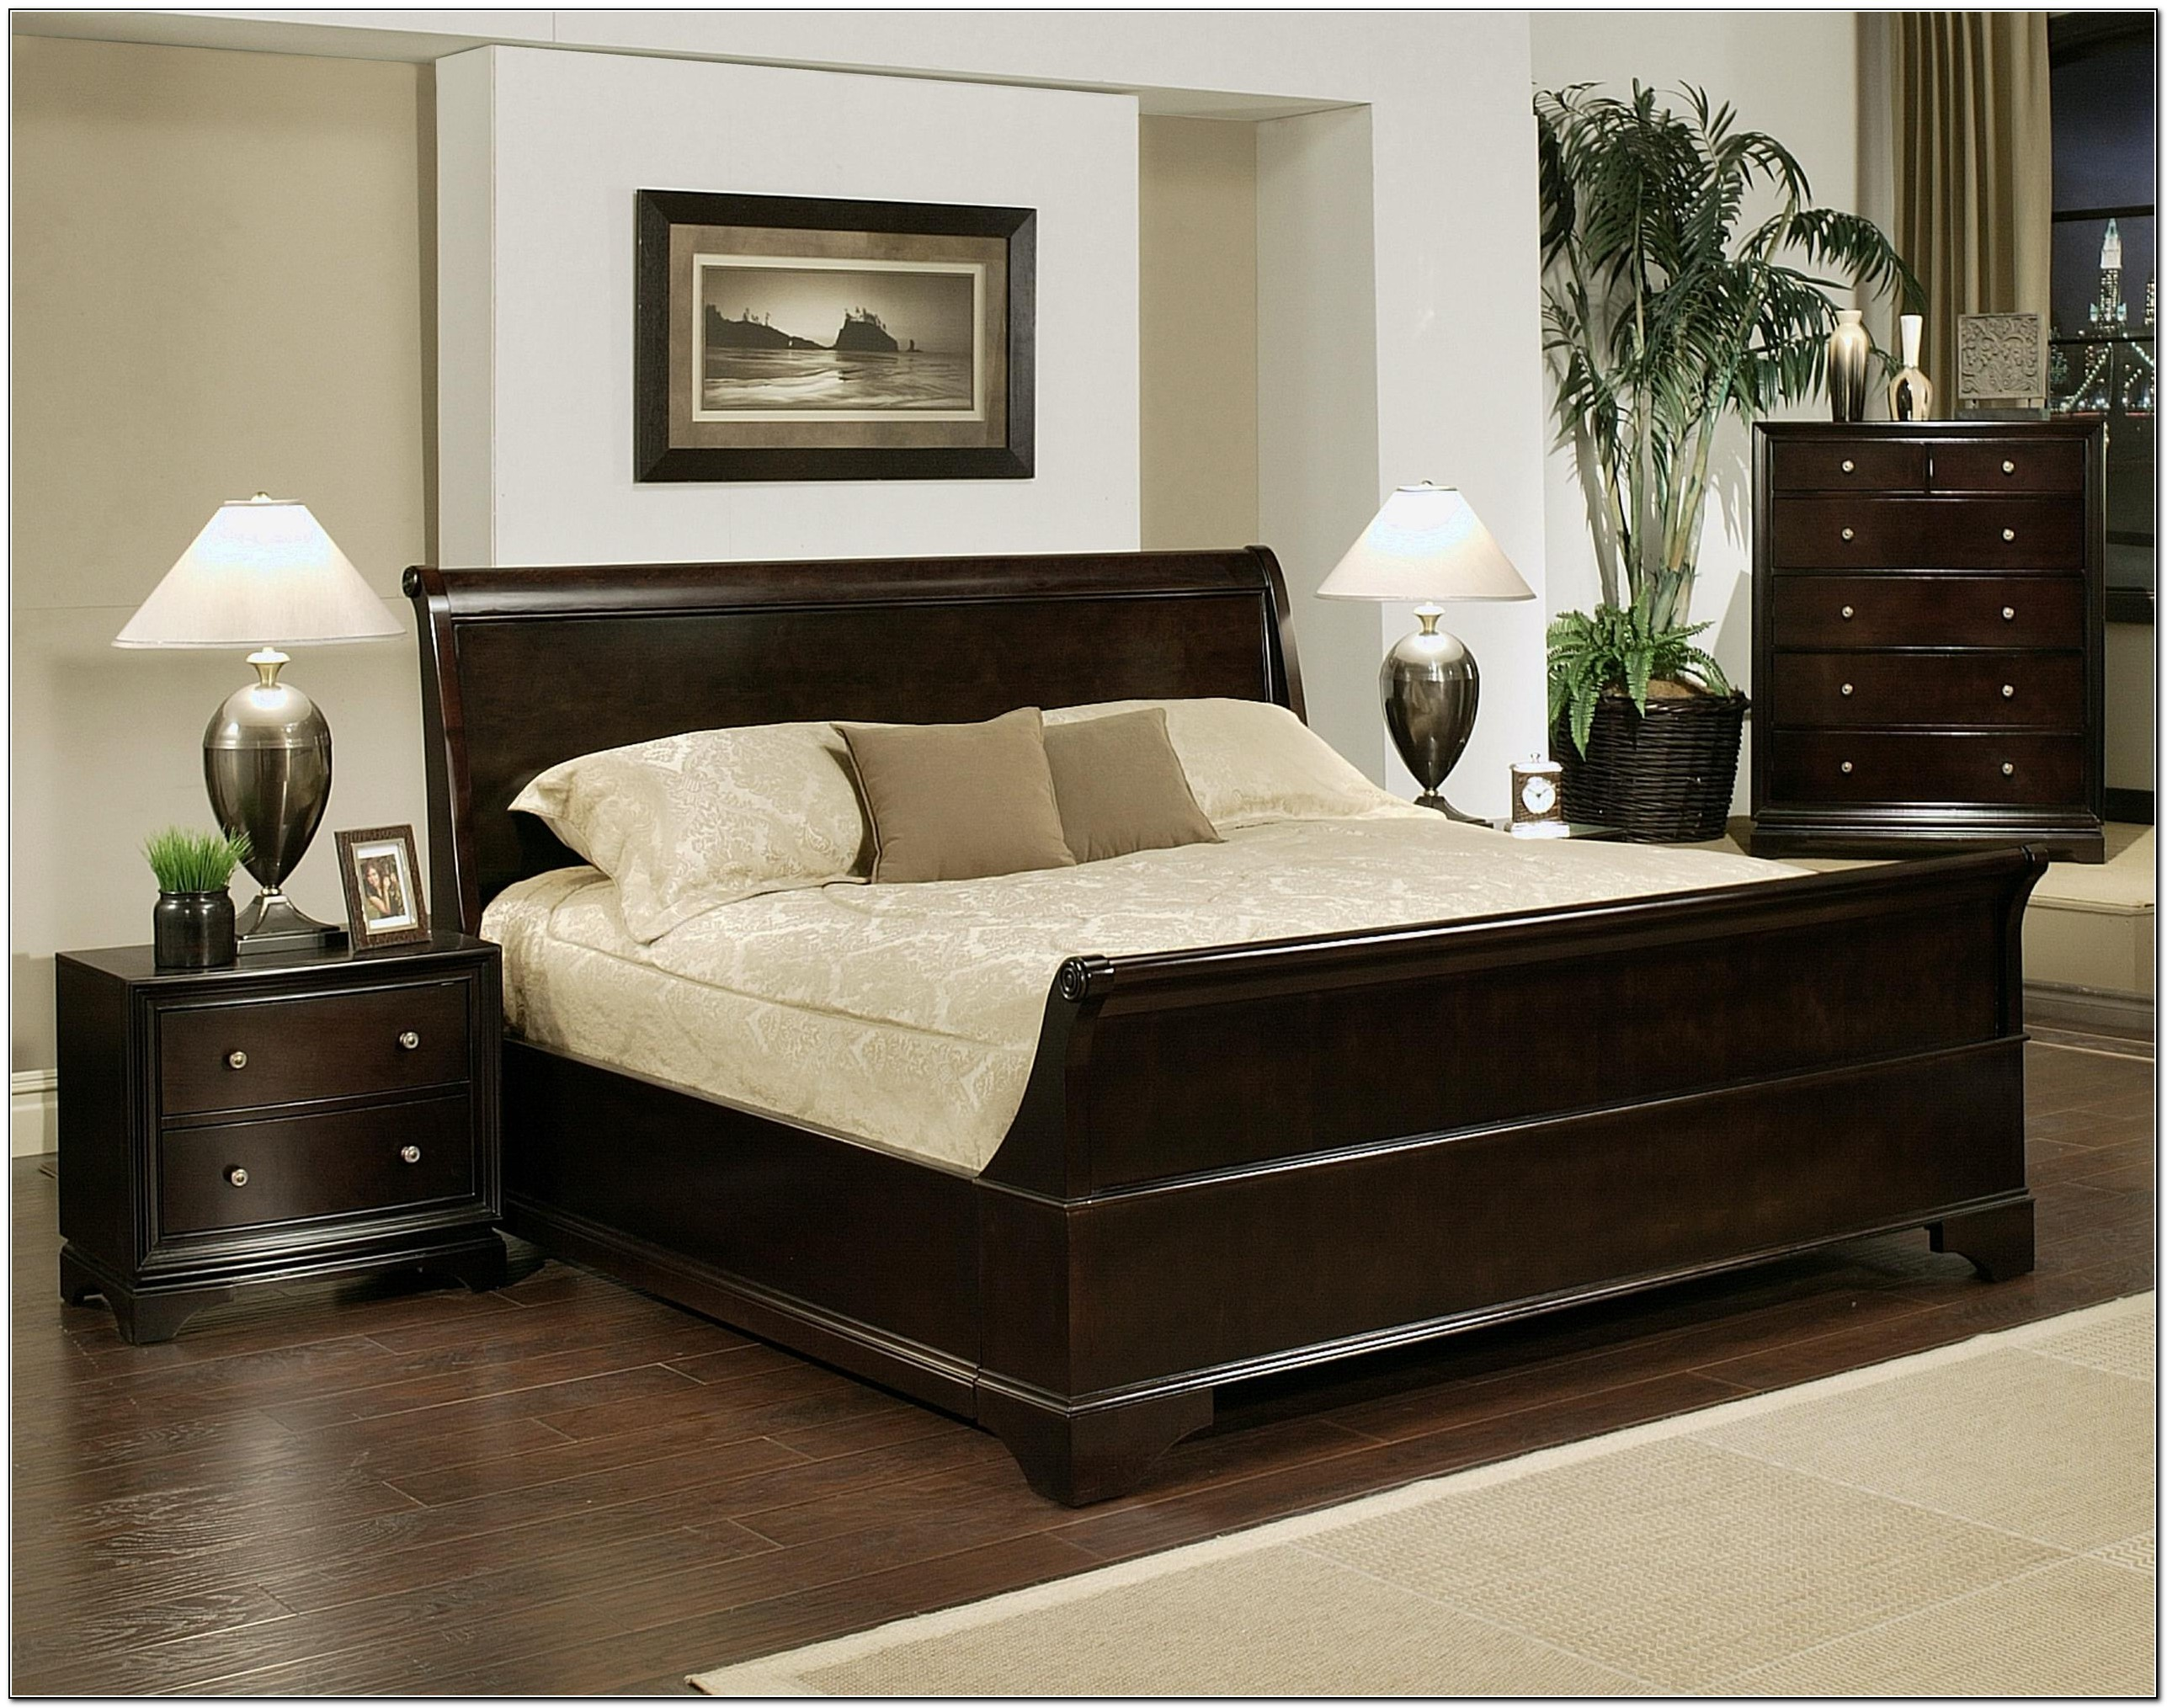 king size bed frame ideas beds home design ideas